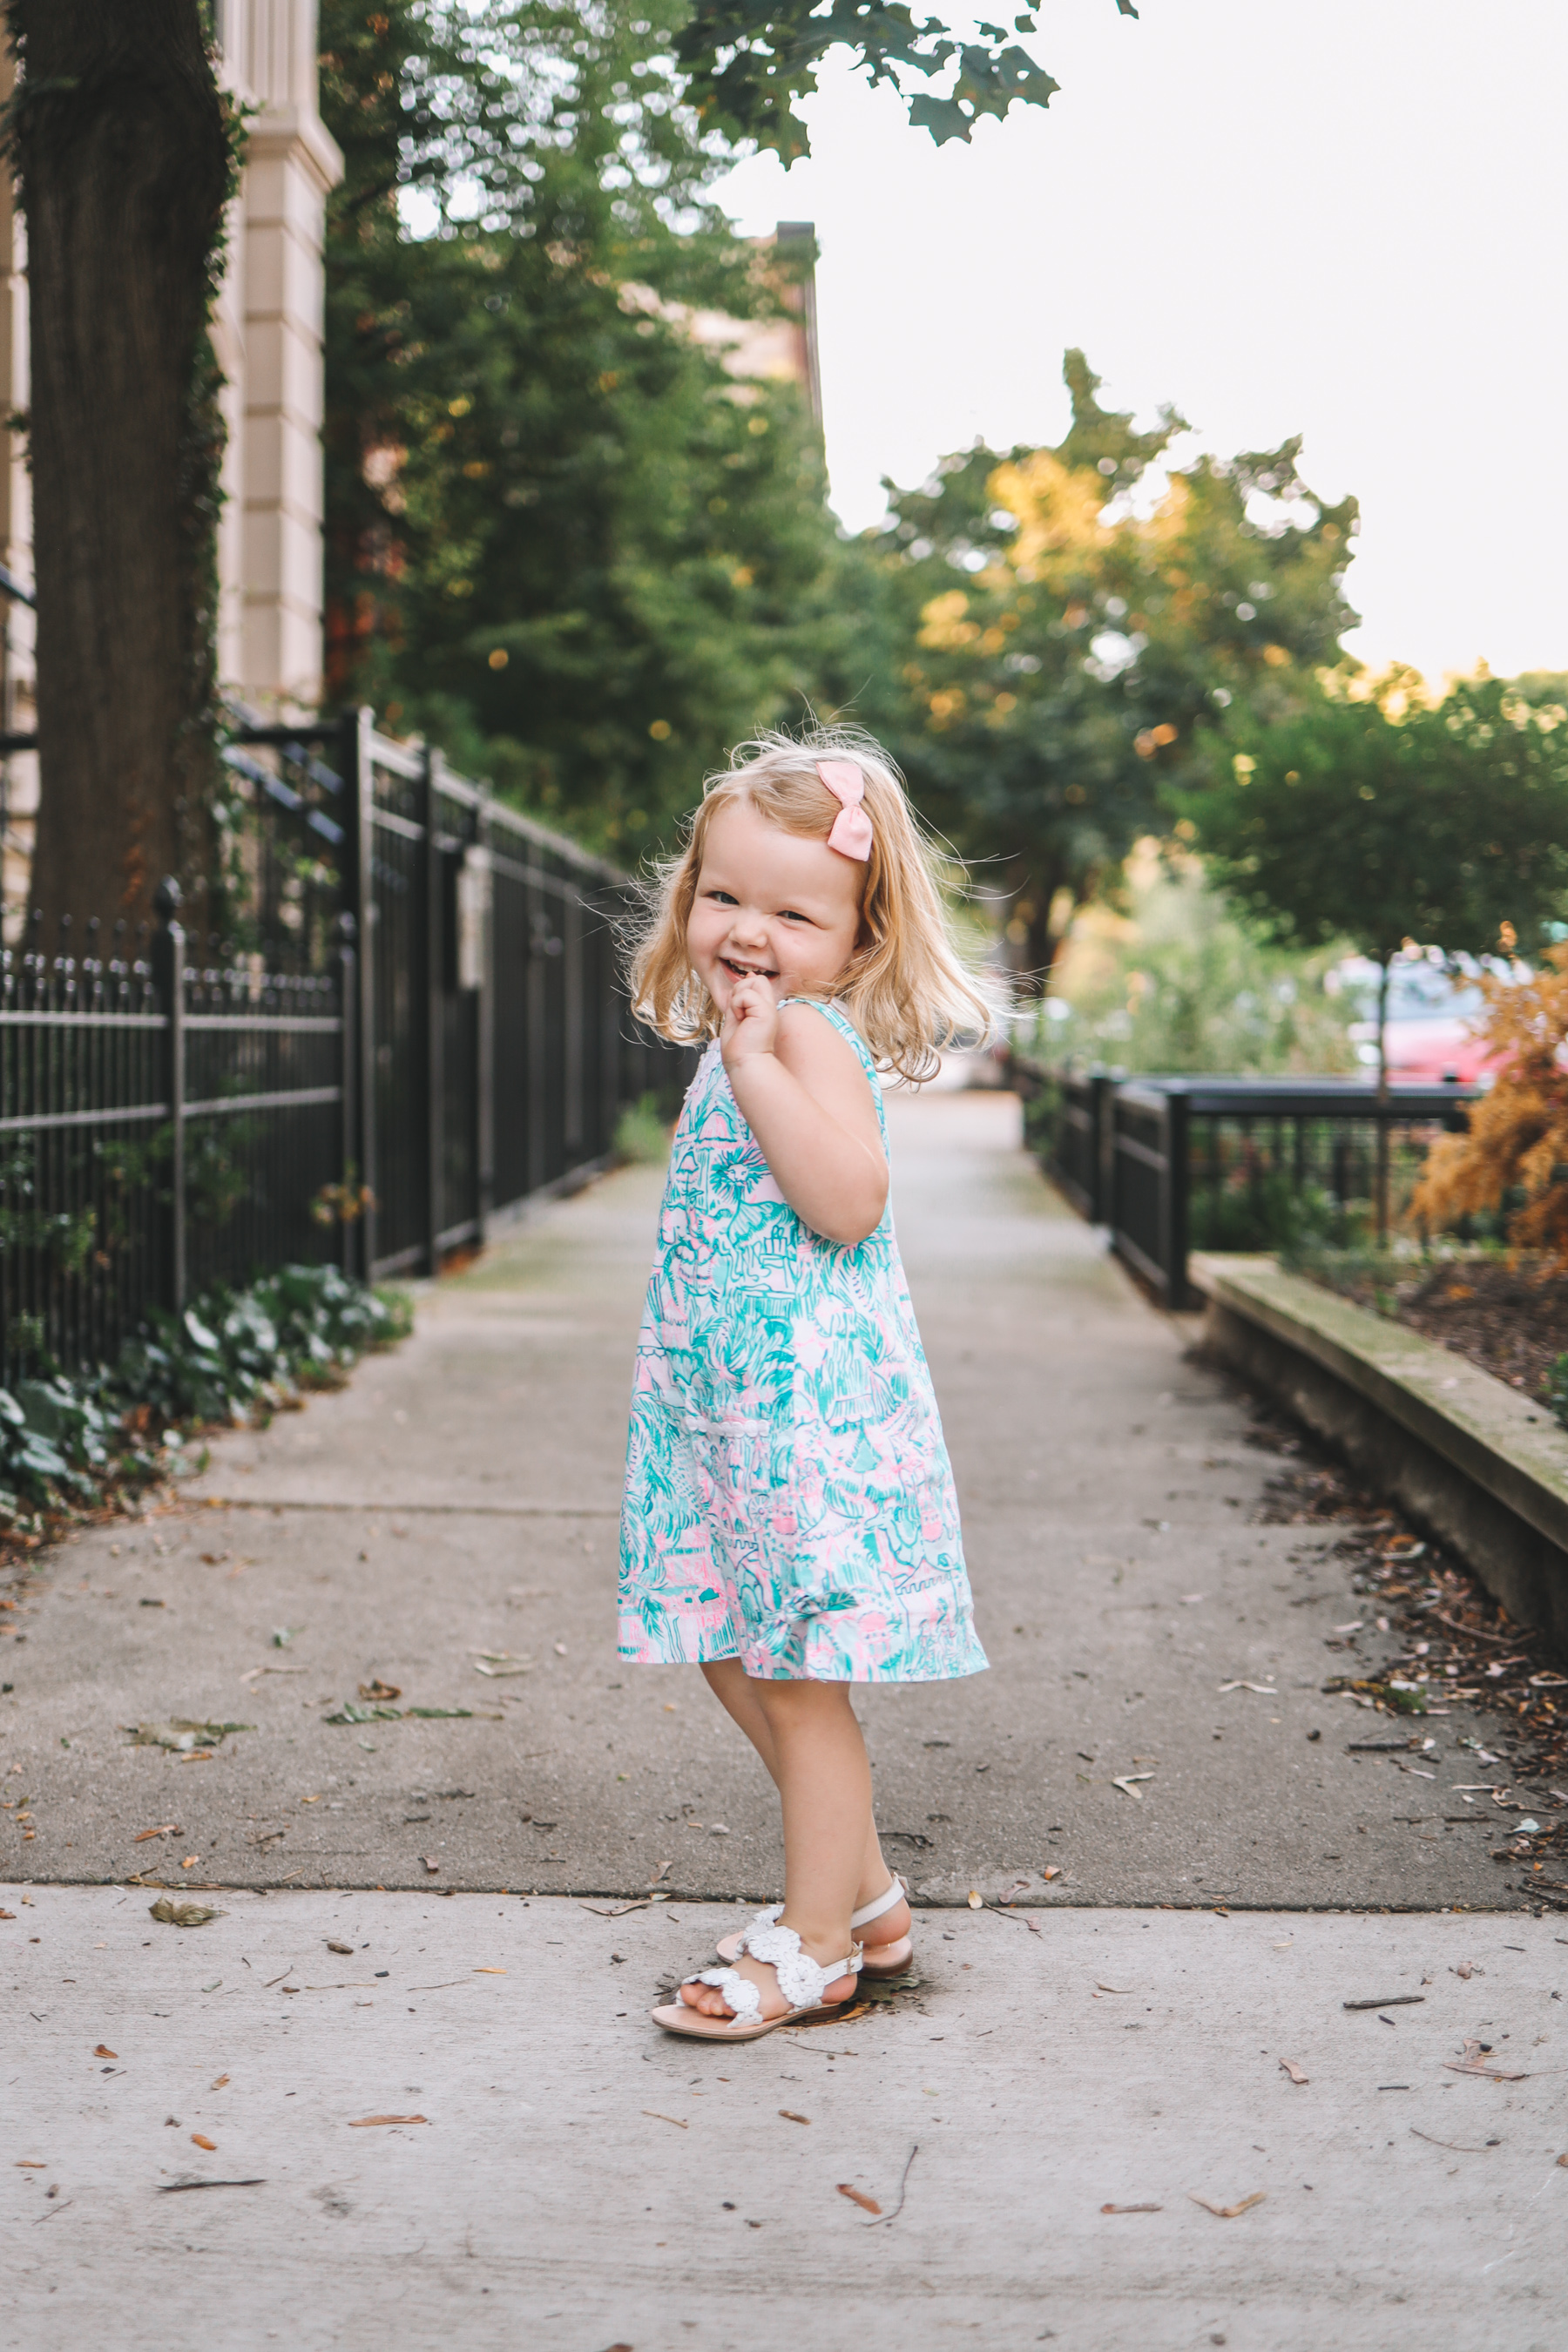 a little girl smiling in a dress